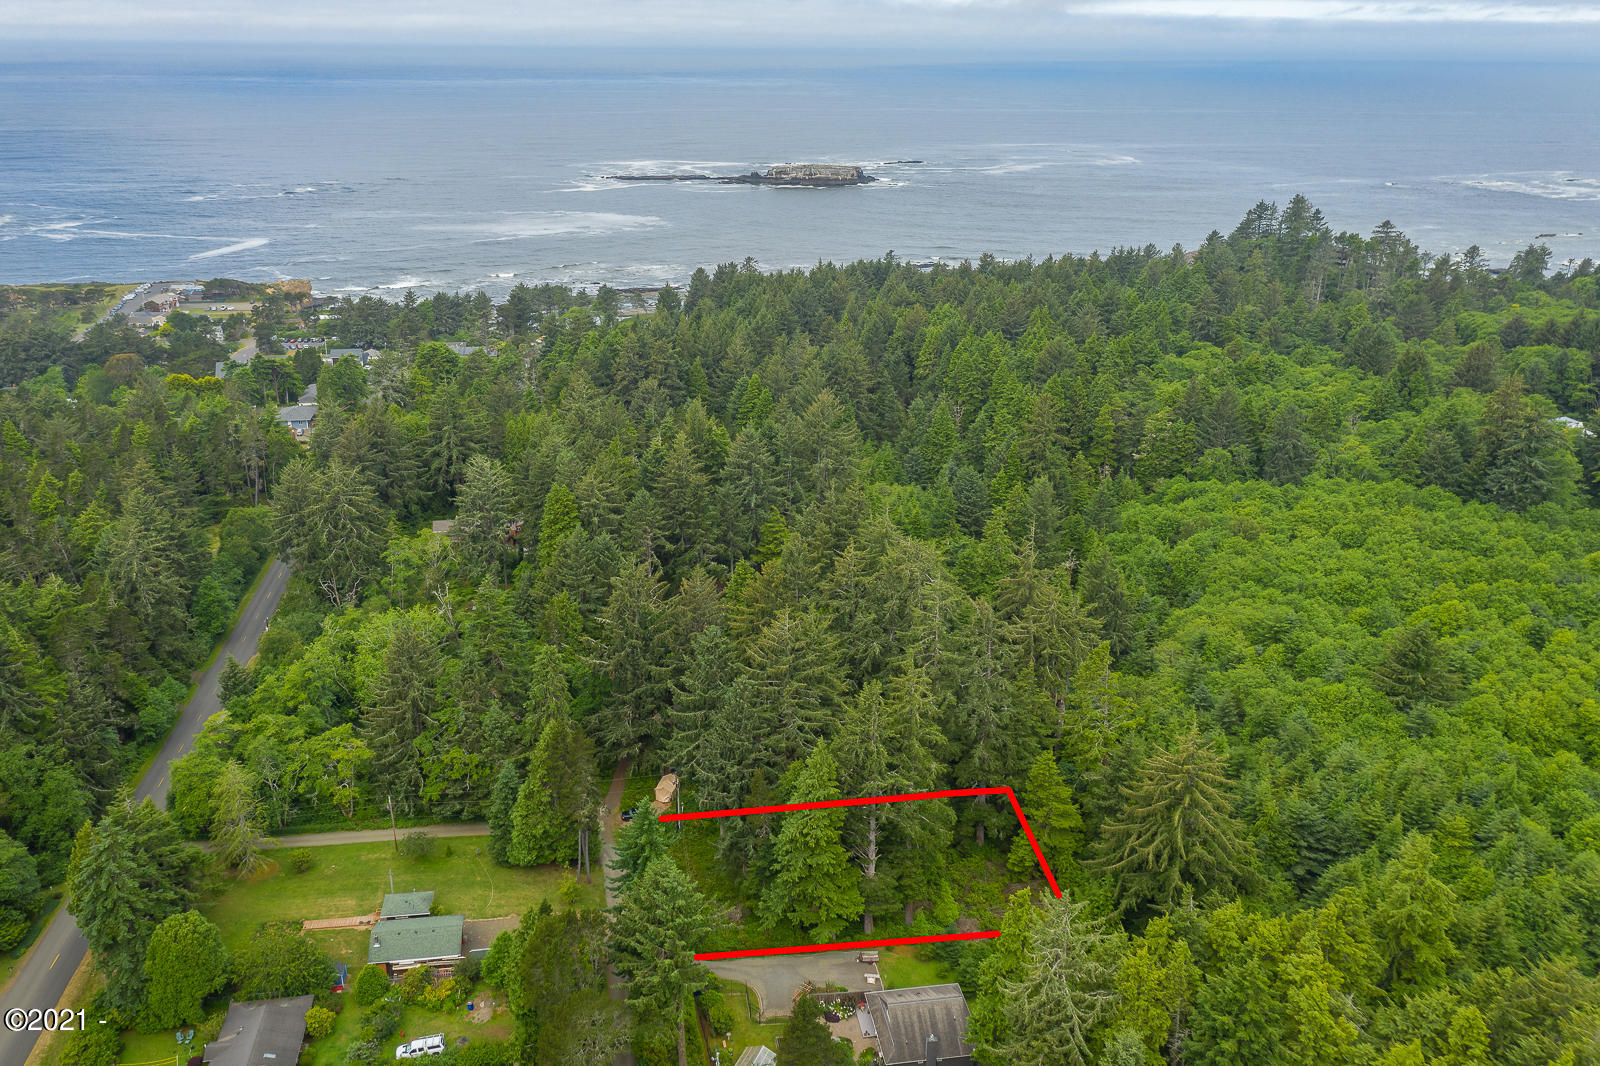 LOT 16 4th St, Otter Rock, OR 97369 - Lot 16 4th St